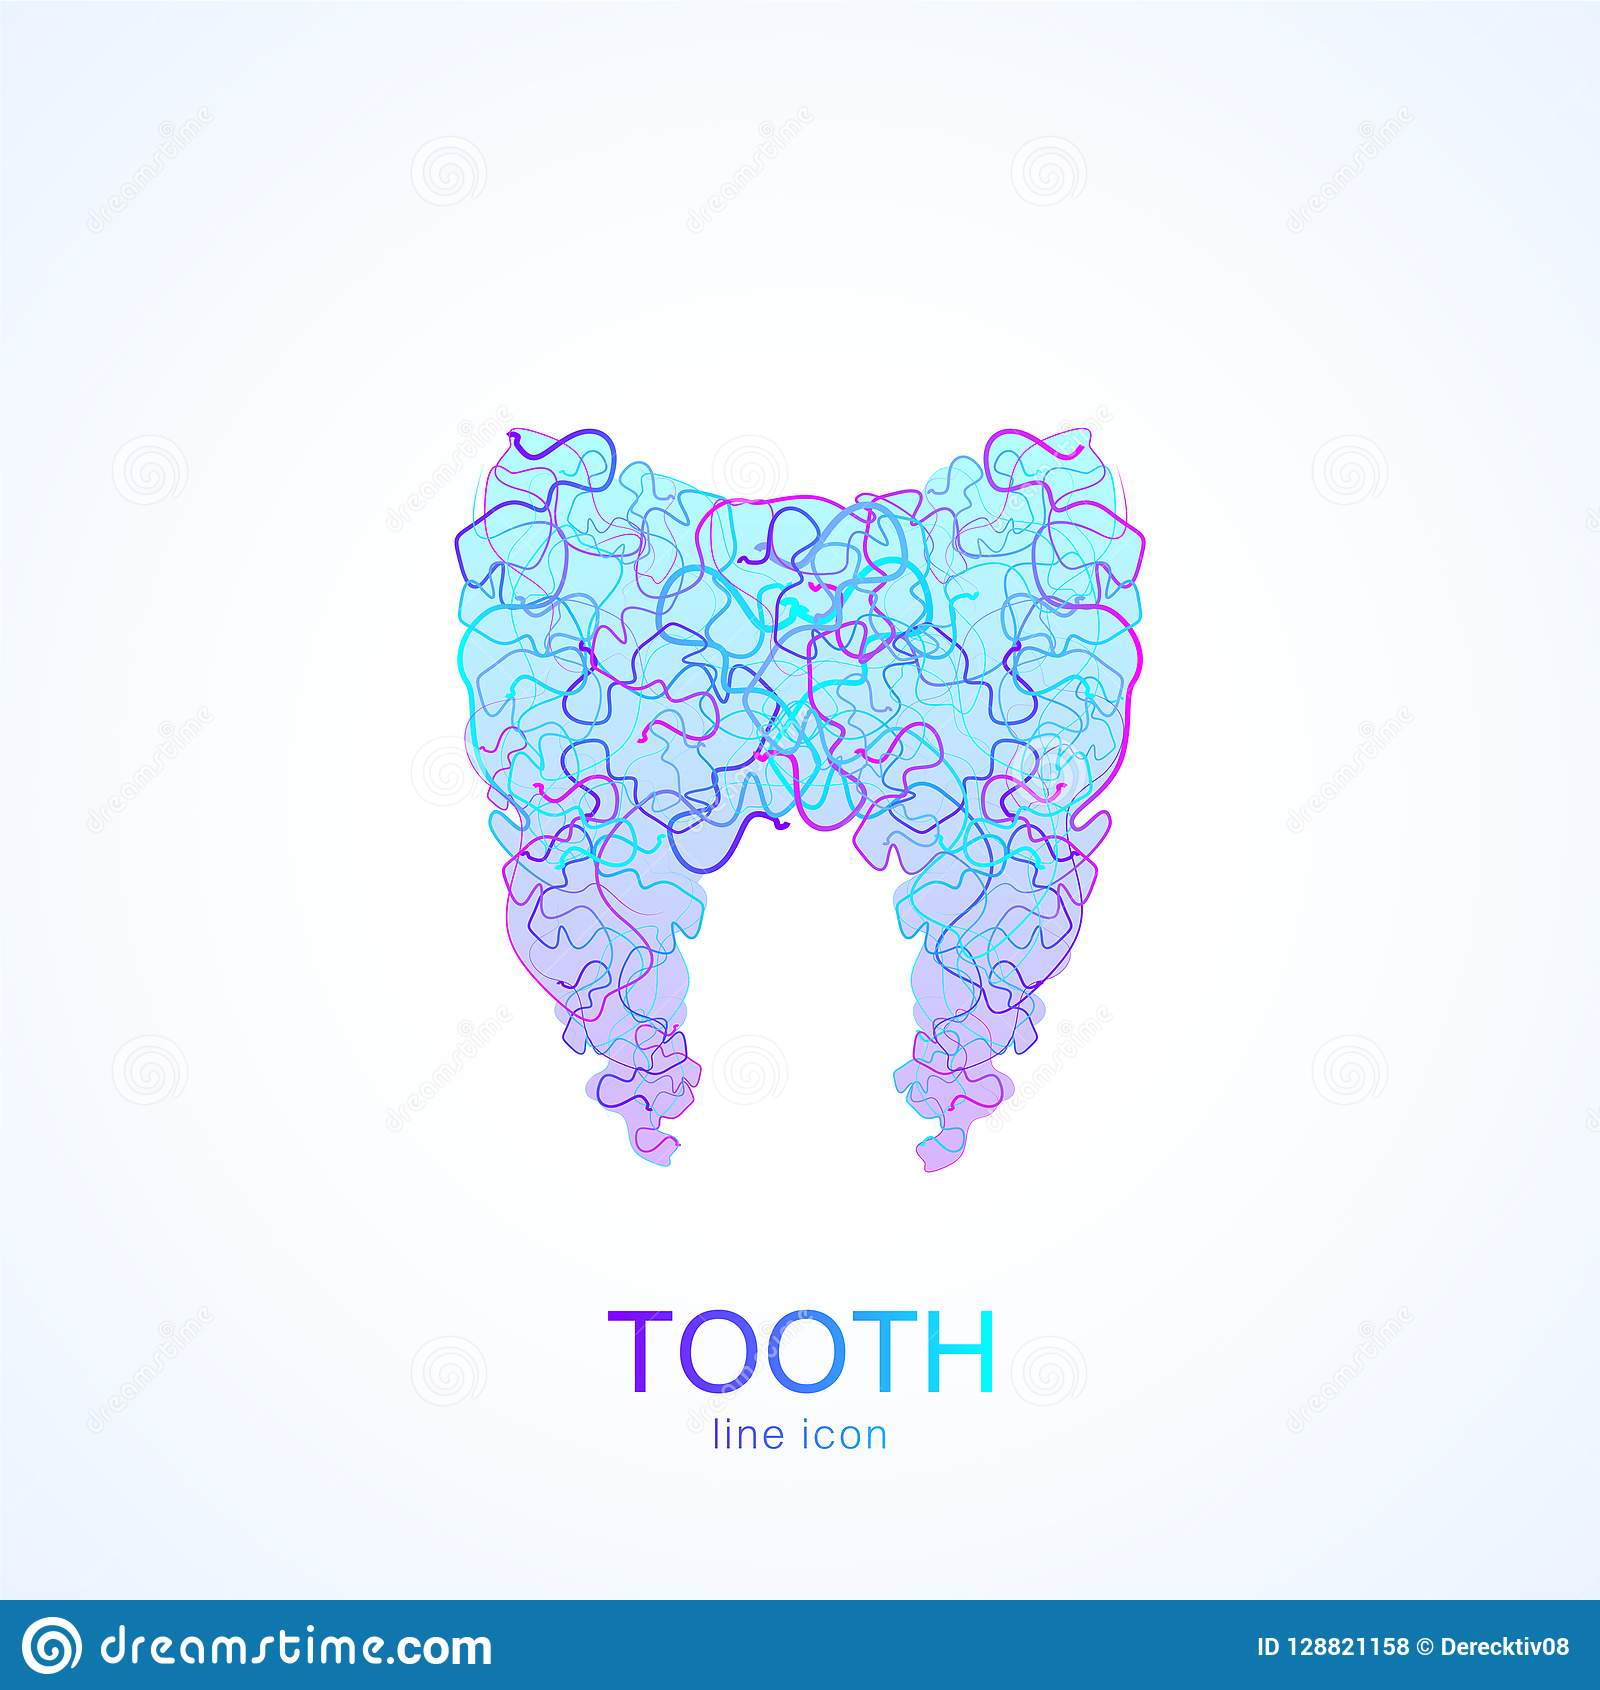 Tooth Logo In Linear Dental Clinic Tooth Abstract Design Vector